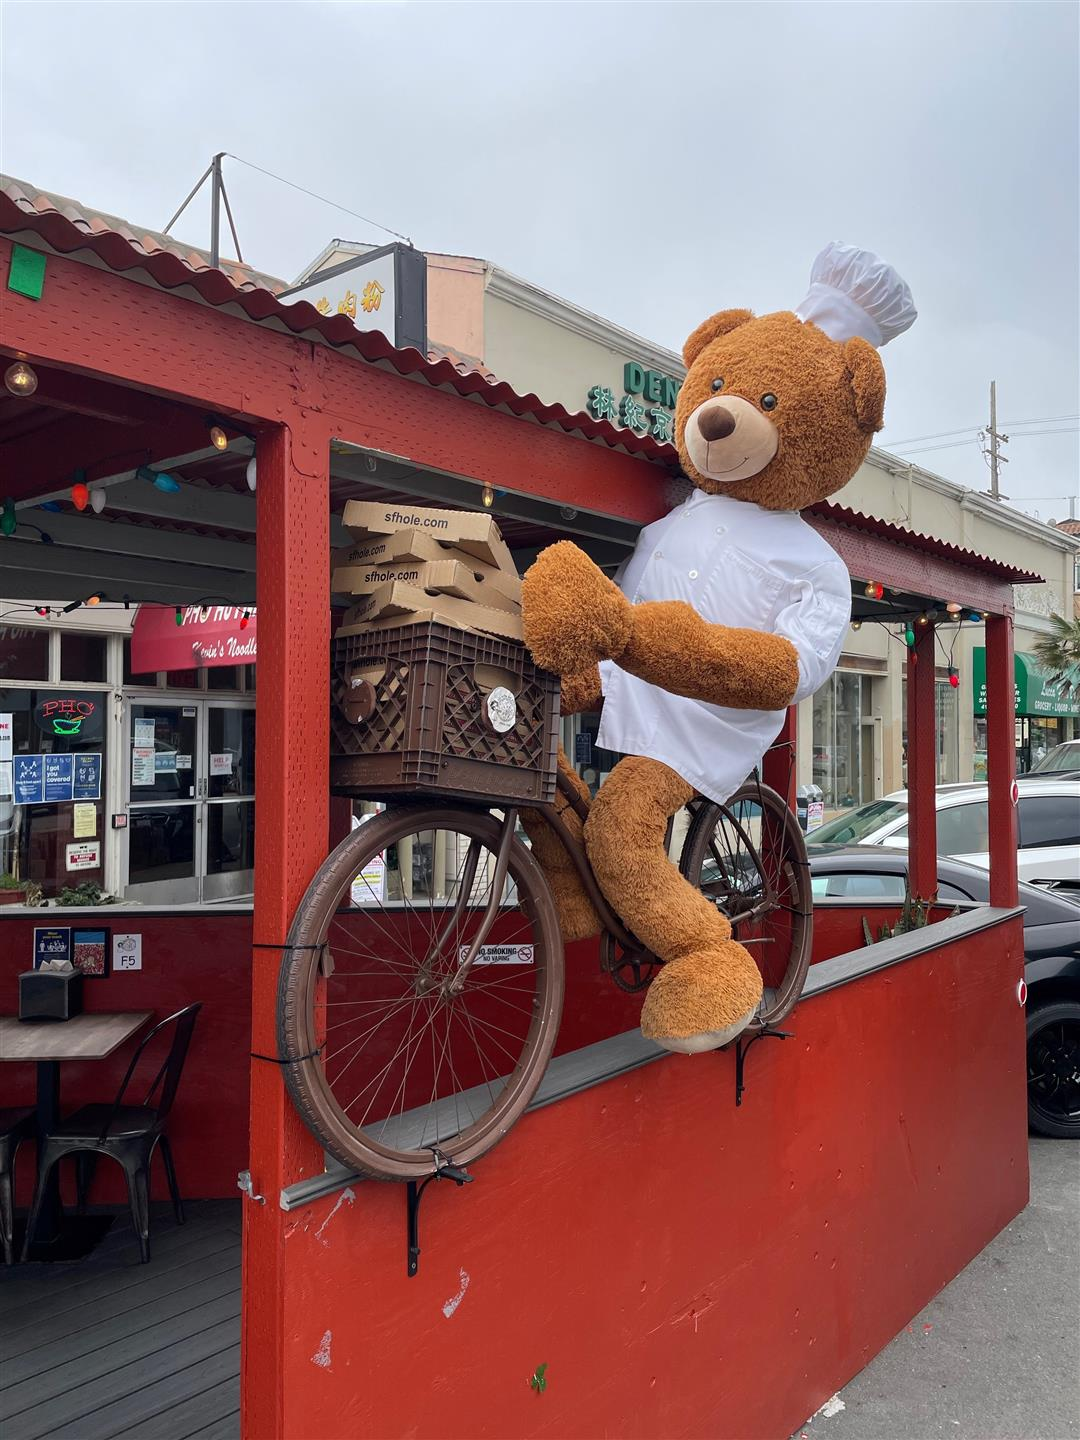 Chef stuffed Bear on a bike holding pizza boxes in front of restaurant